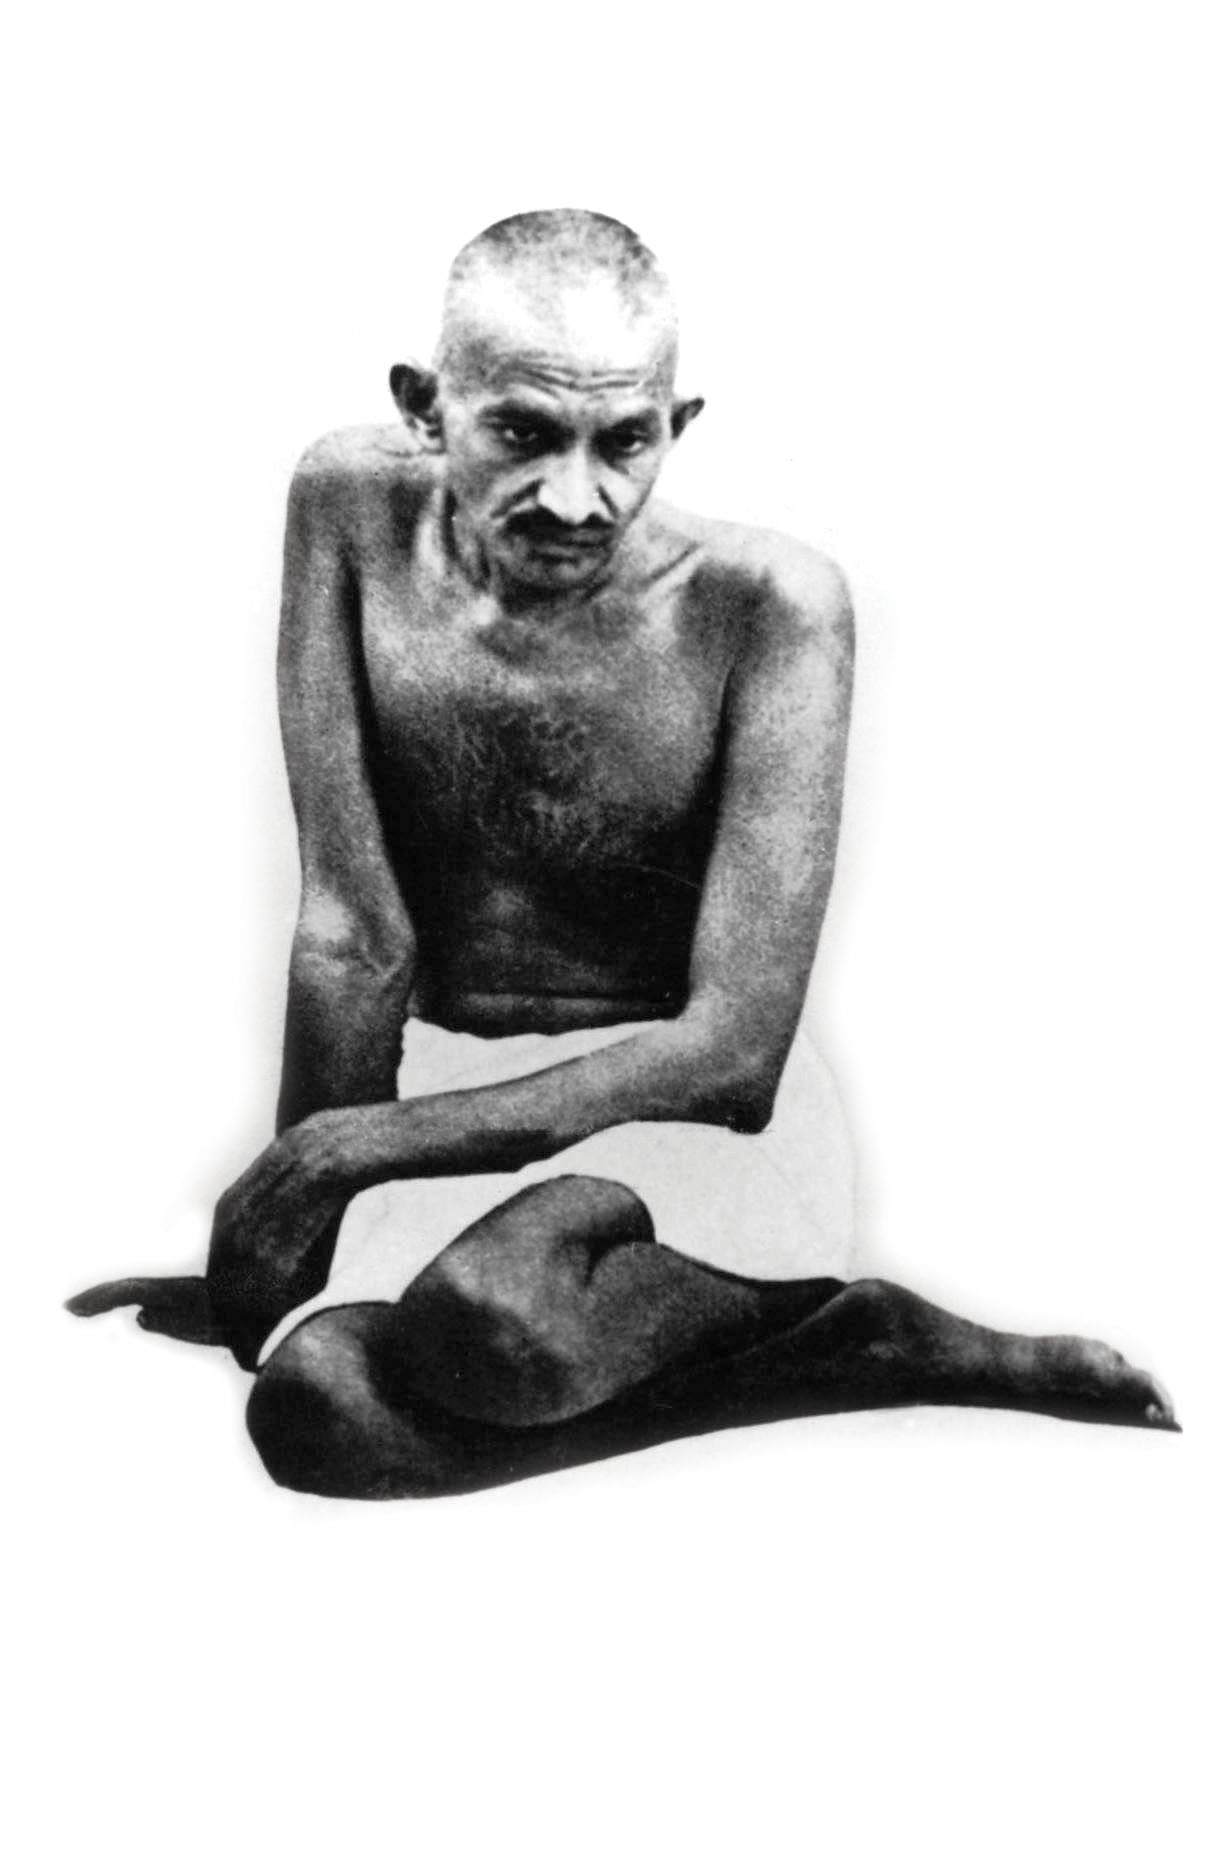 Gandhi's anti-colonialism extended to clothes. While the traditional Indian menswear of wearing only a dhoti was seen as uncivilised, Gandhi embraced it to be close to the common Indian. Credit: Getty Images